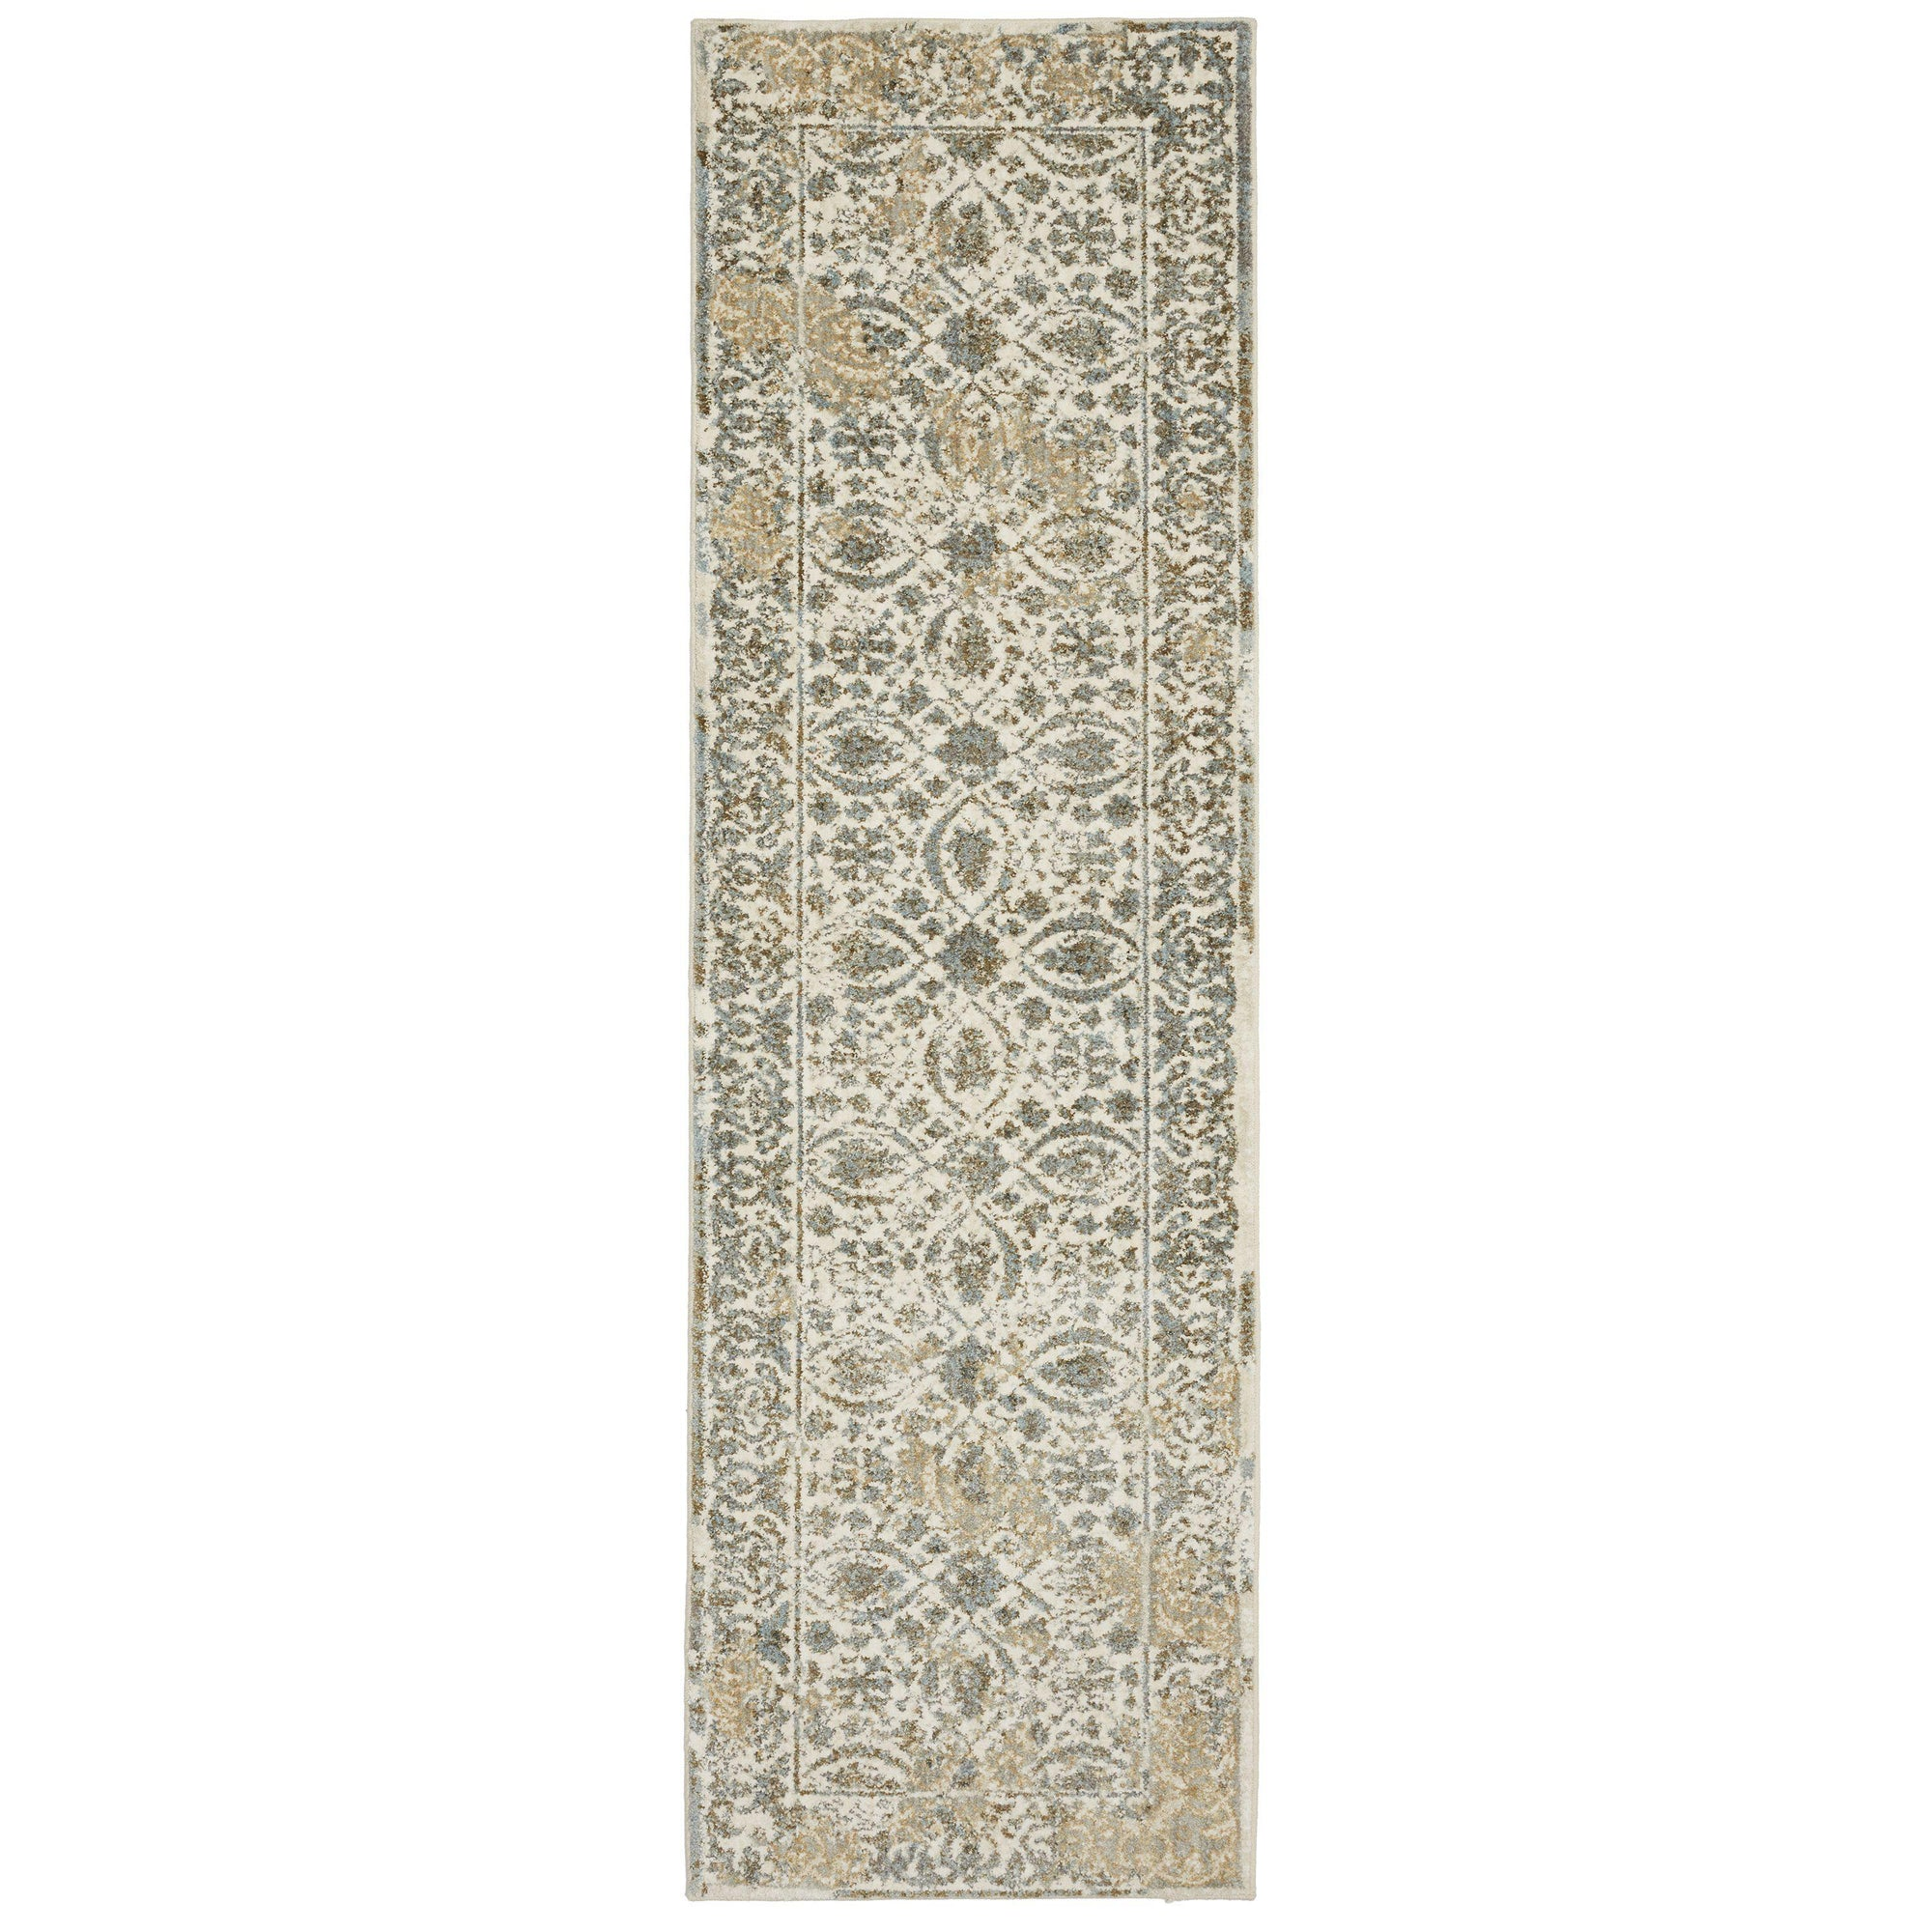 "Karastan Touchstone Ness Willow Grey-Area Rug-Karastan-3' 6""x5' 6""-The Rug Truck"